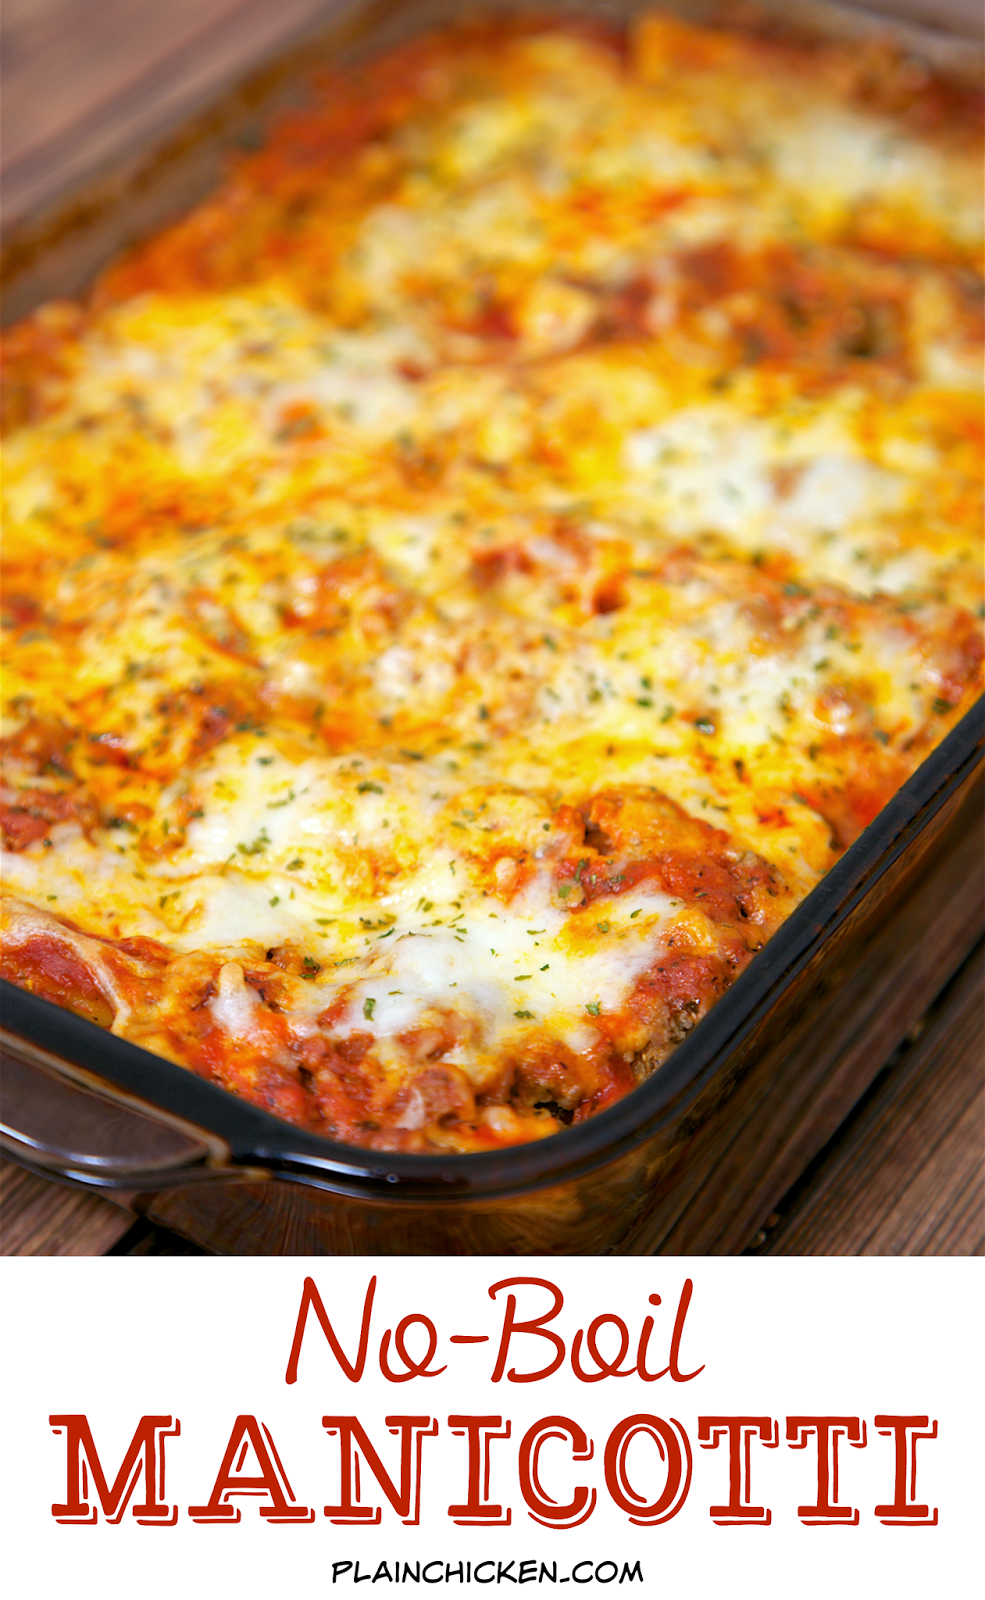 No-Boil Manicotti - cheese stuffed manicotti noodles baked in a quick meat sauce. No need to precook the pasta! It cooks with everything else! This is SO good and SOOO easy! Everyone gobbled it up! Serve with a salad and crusty garlic bread for an easy weeknight meal.